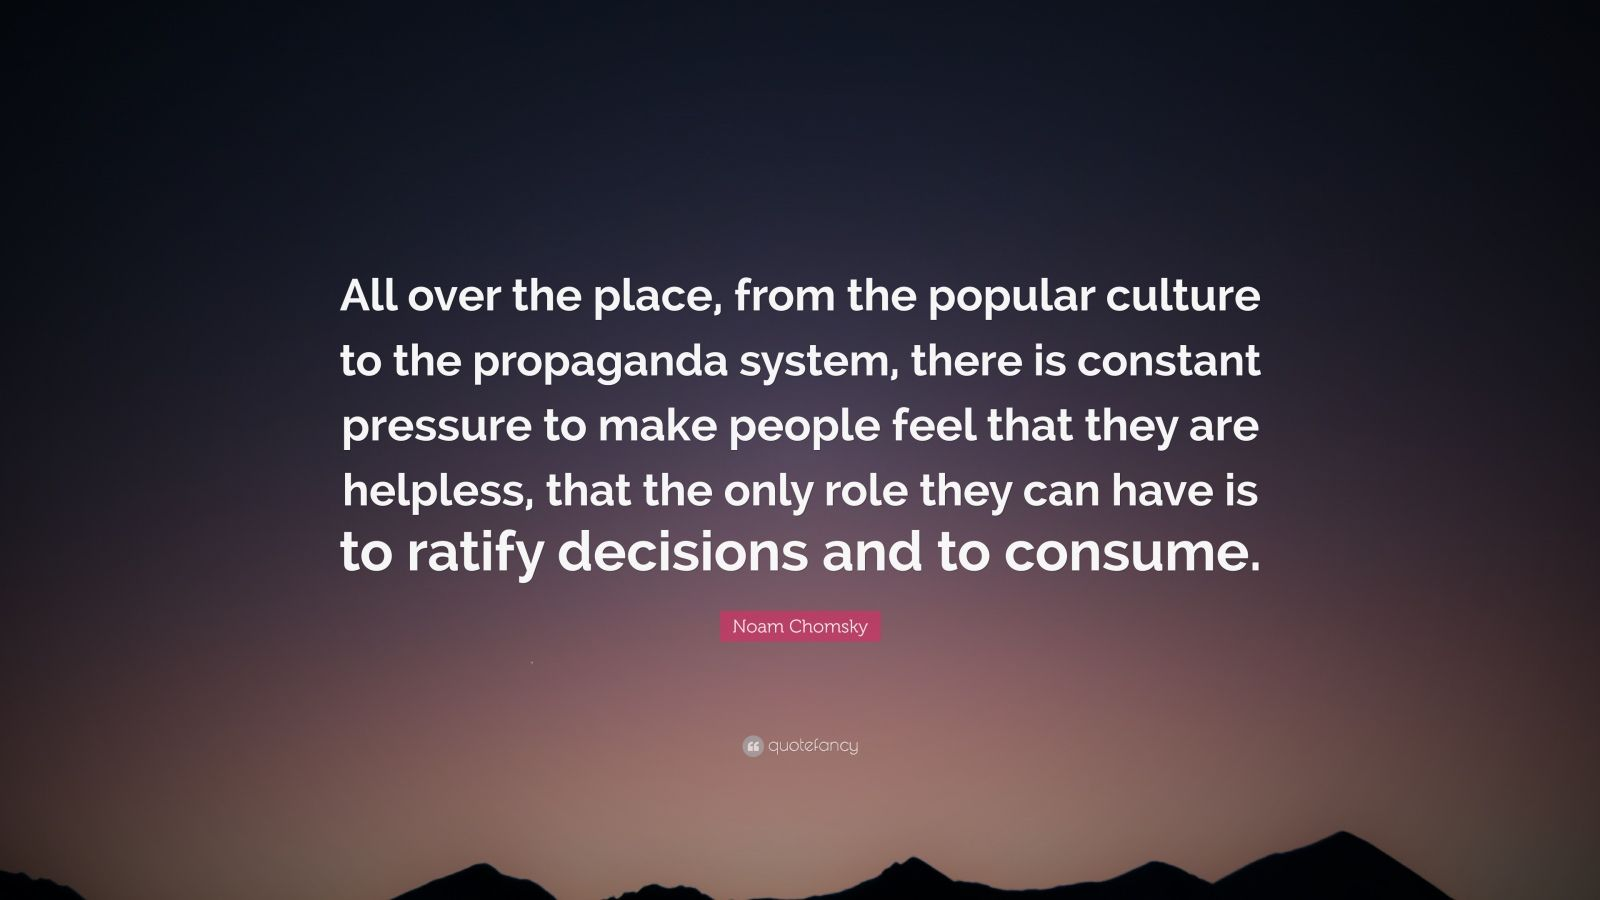 """Noam Chomsky Quote: """"All over the place, from the popular culture to the propaganda system, there is constant pressure to make people feel that they are helpless, that the only role they can have is to ratify decisions and to consume."""""""